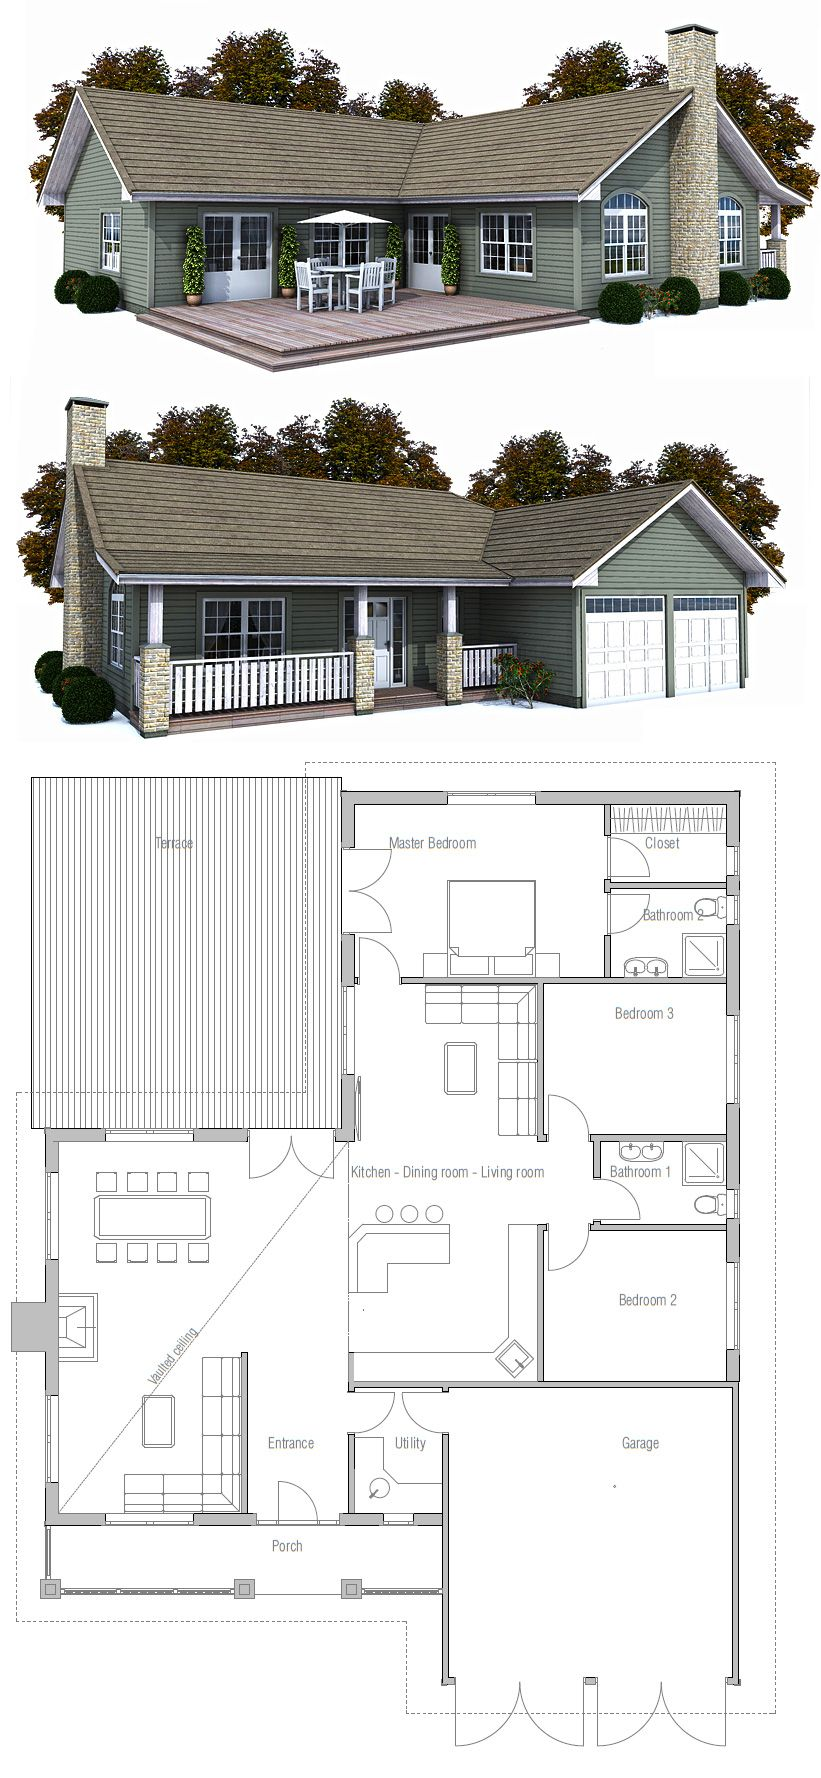 Home Together This Small House Plan Uses Space To Its Advantage Creating A Small Courtyard Out Of What Coul House Layouts House Blueprints Building A House